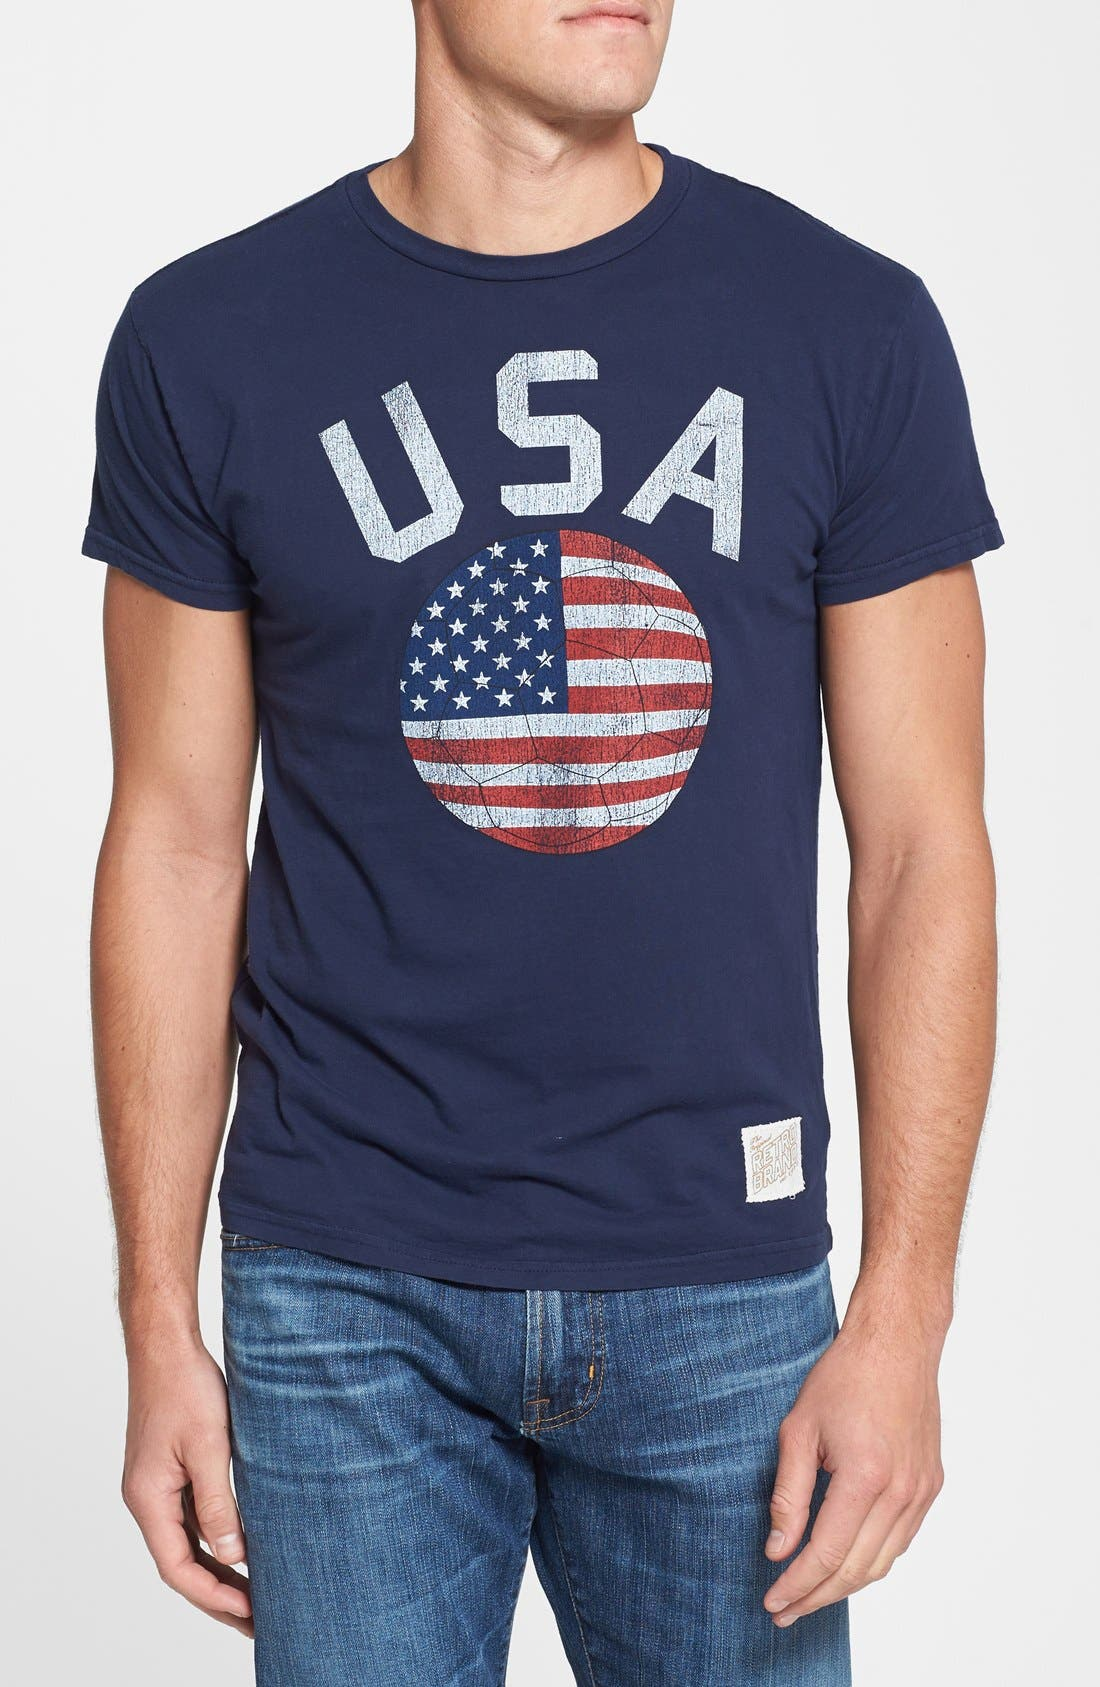 Alternate Image 1 Selected - Retro Brand 'USA Soccer' Slim Fit T-Shirt